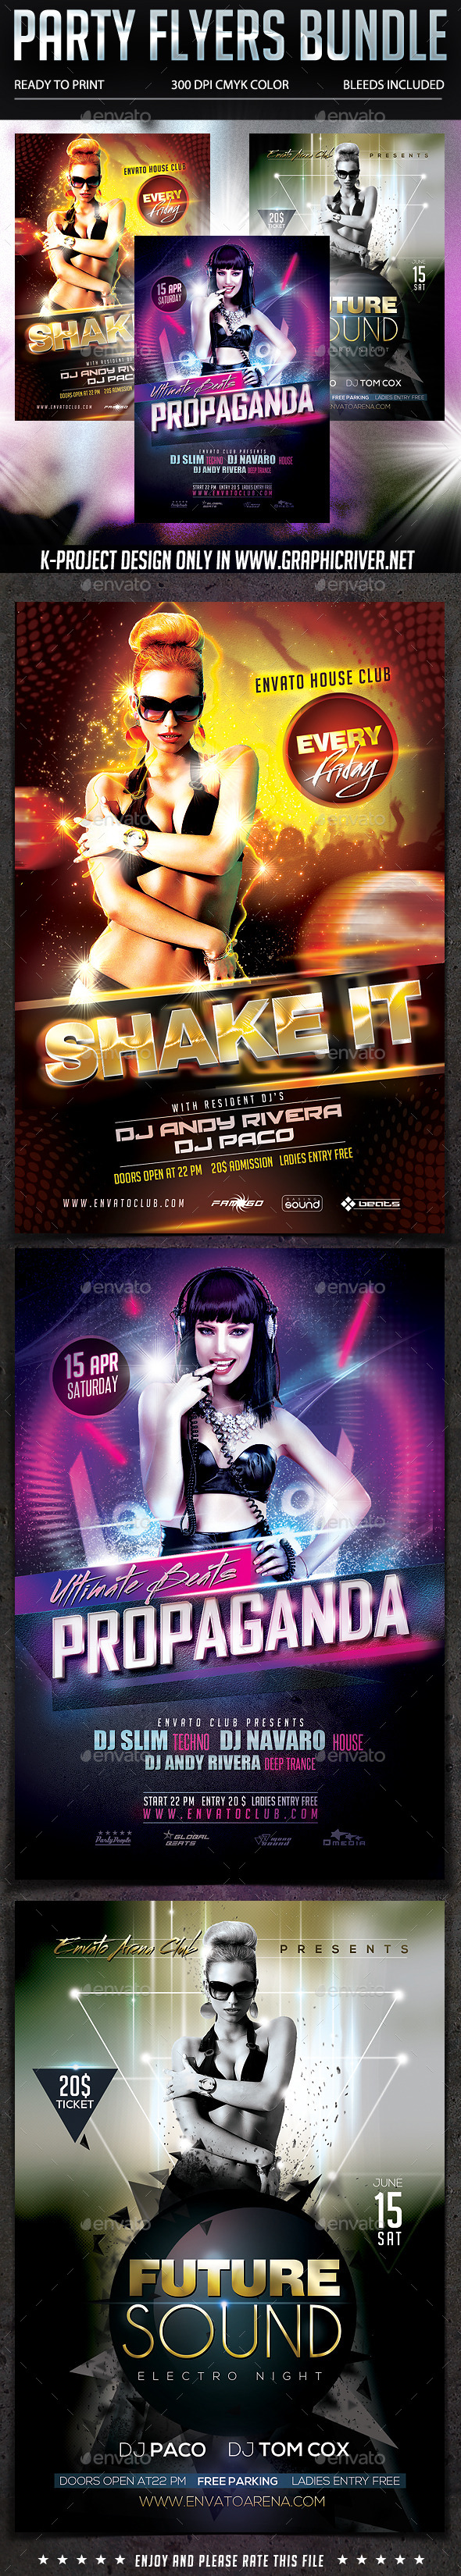 GraphicRiver Party Flyers Bundle 10377580